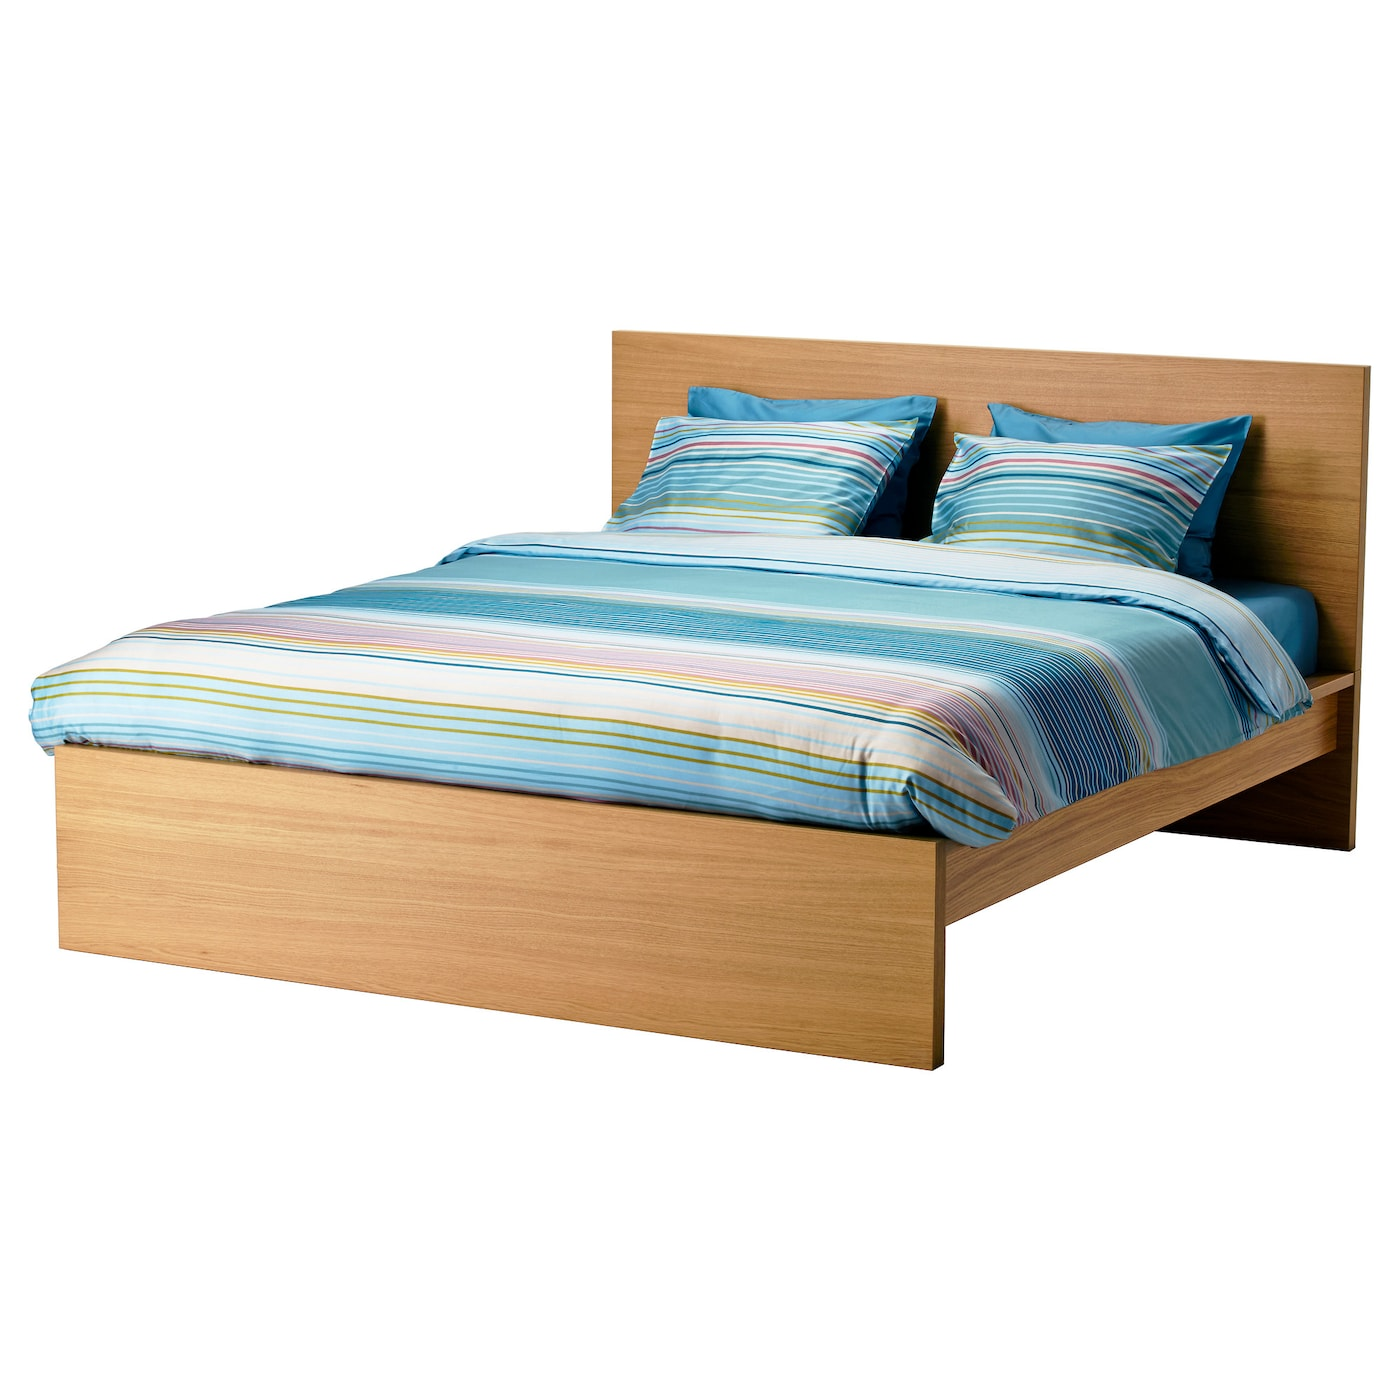 malm bed frame high oak veneer l nset 180x200 cm ikea